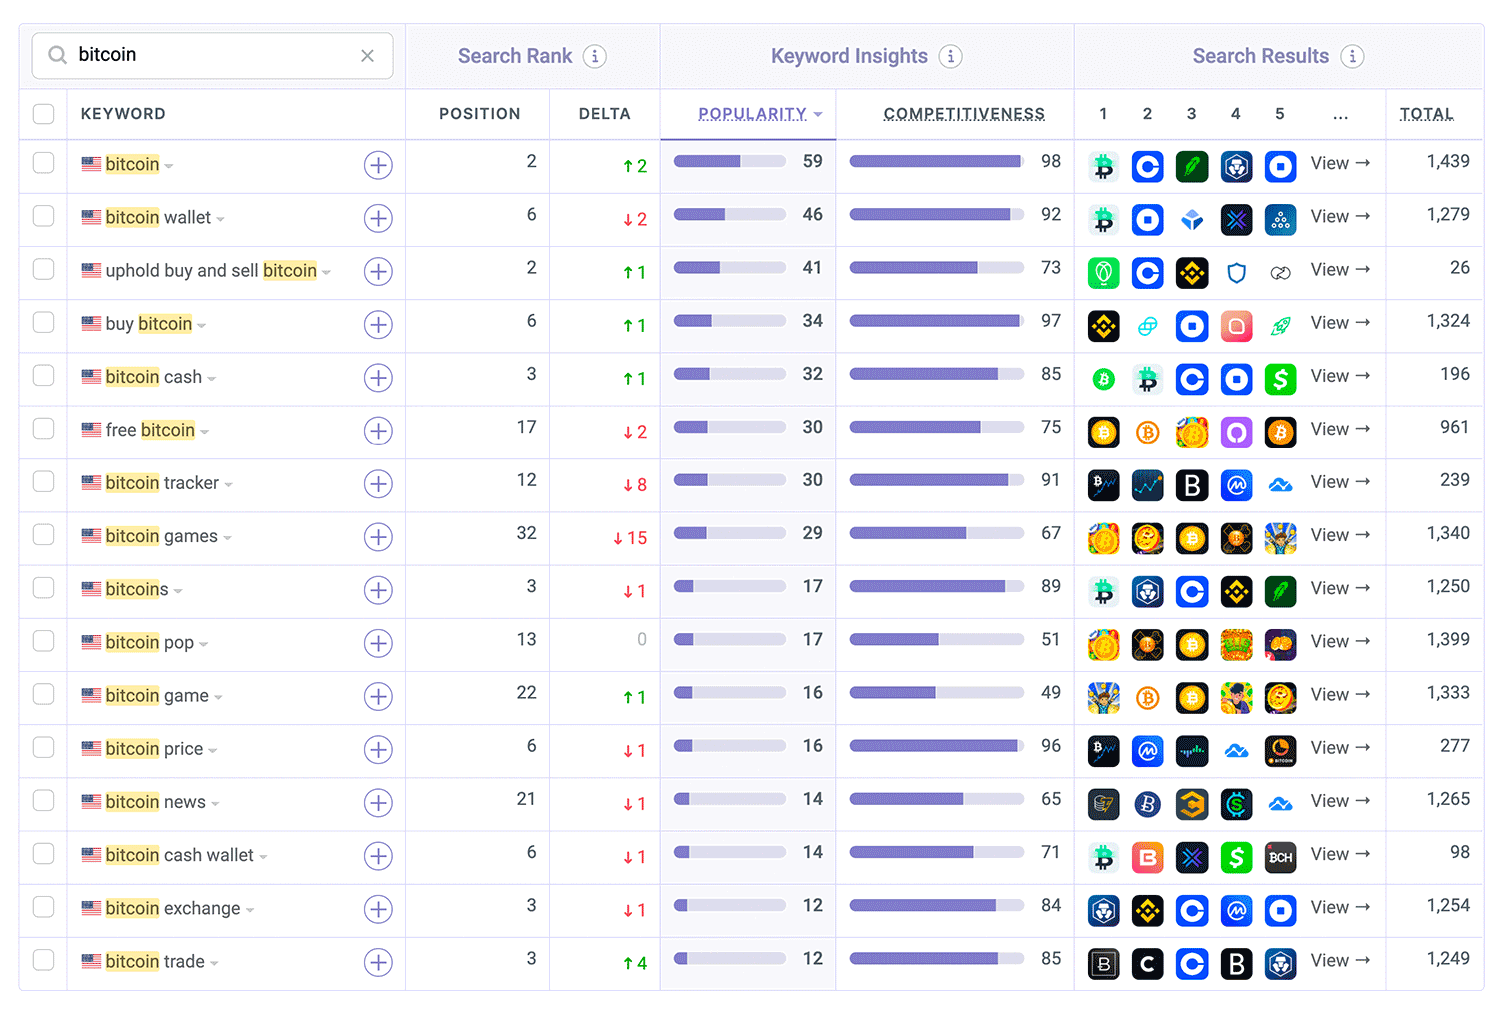 Where Coinbase is ranked on the App Store by Appfigures